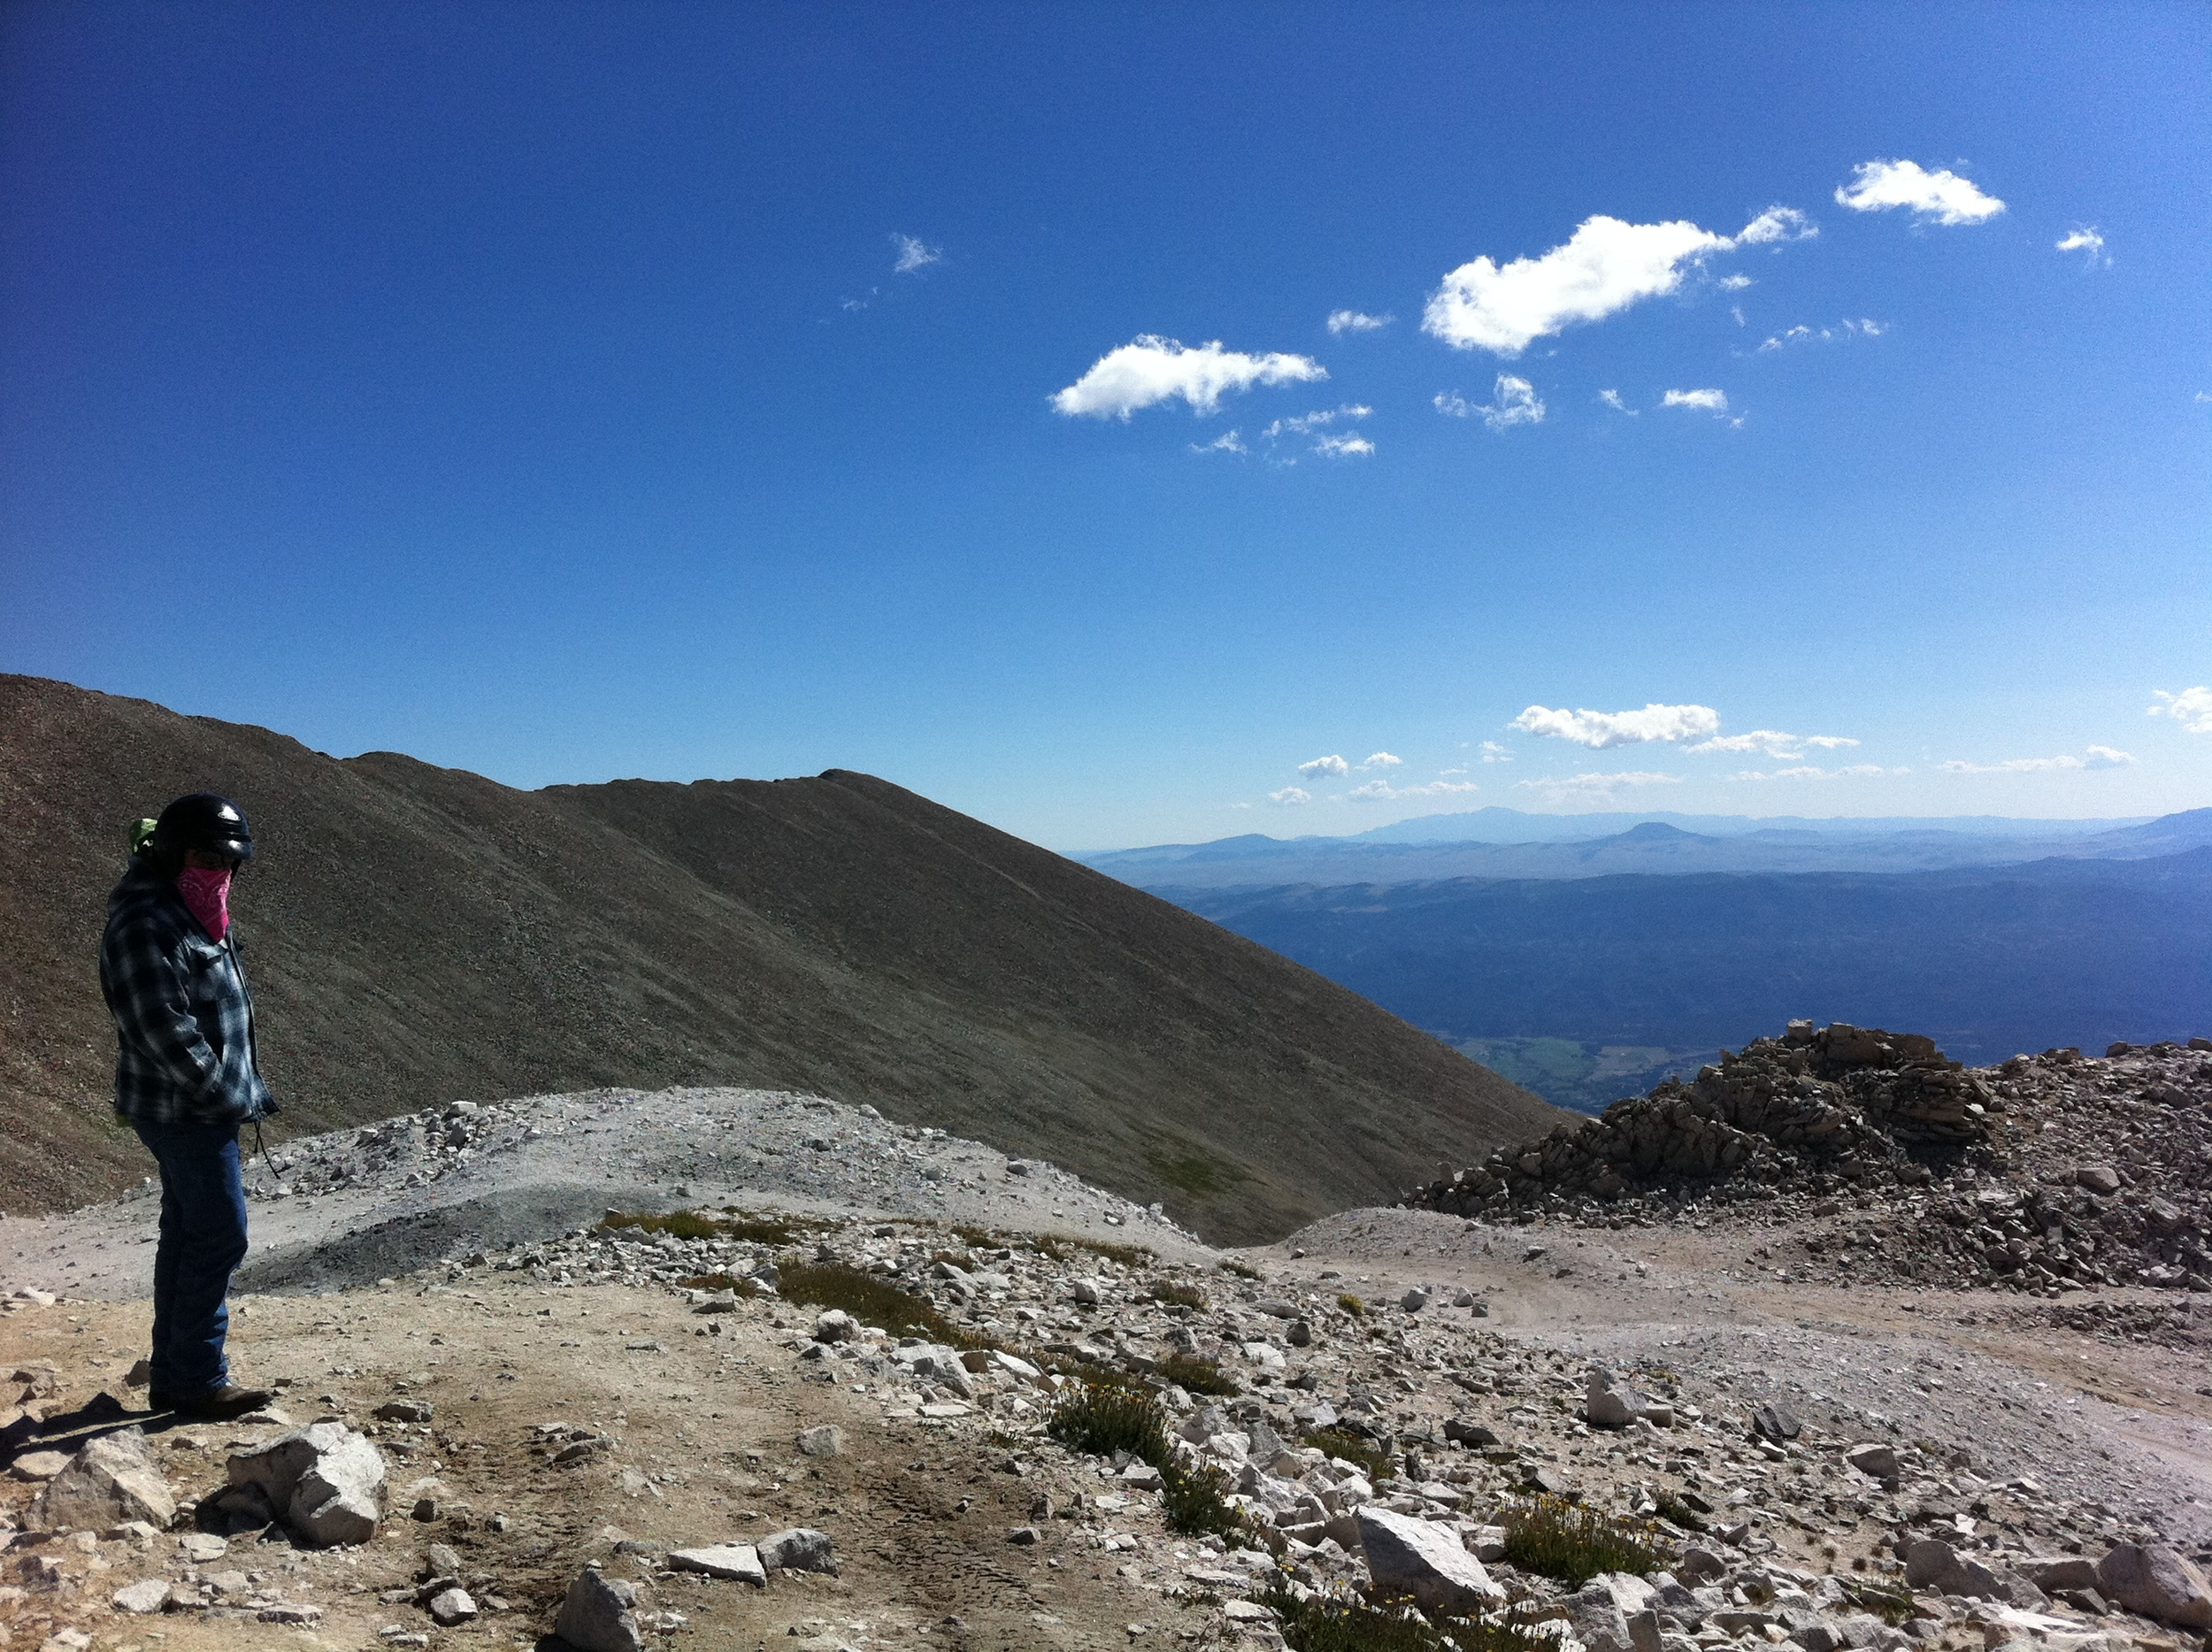 View near the summit of Mt Antero